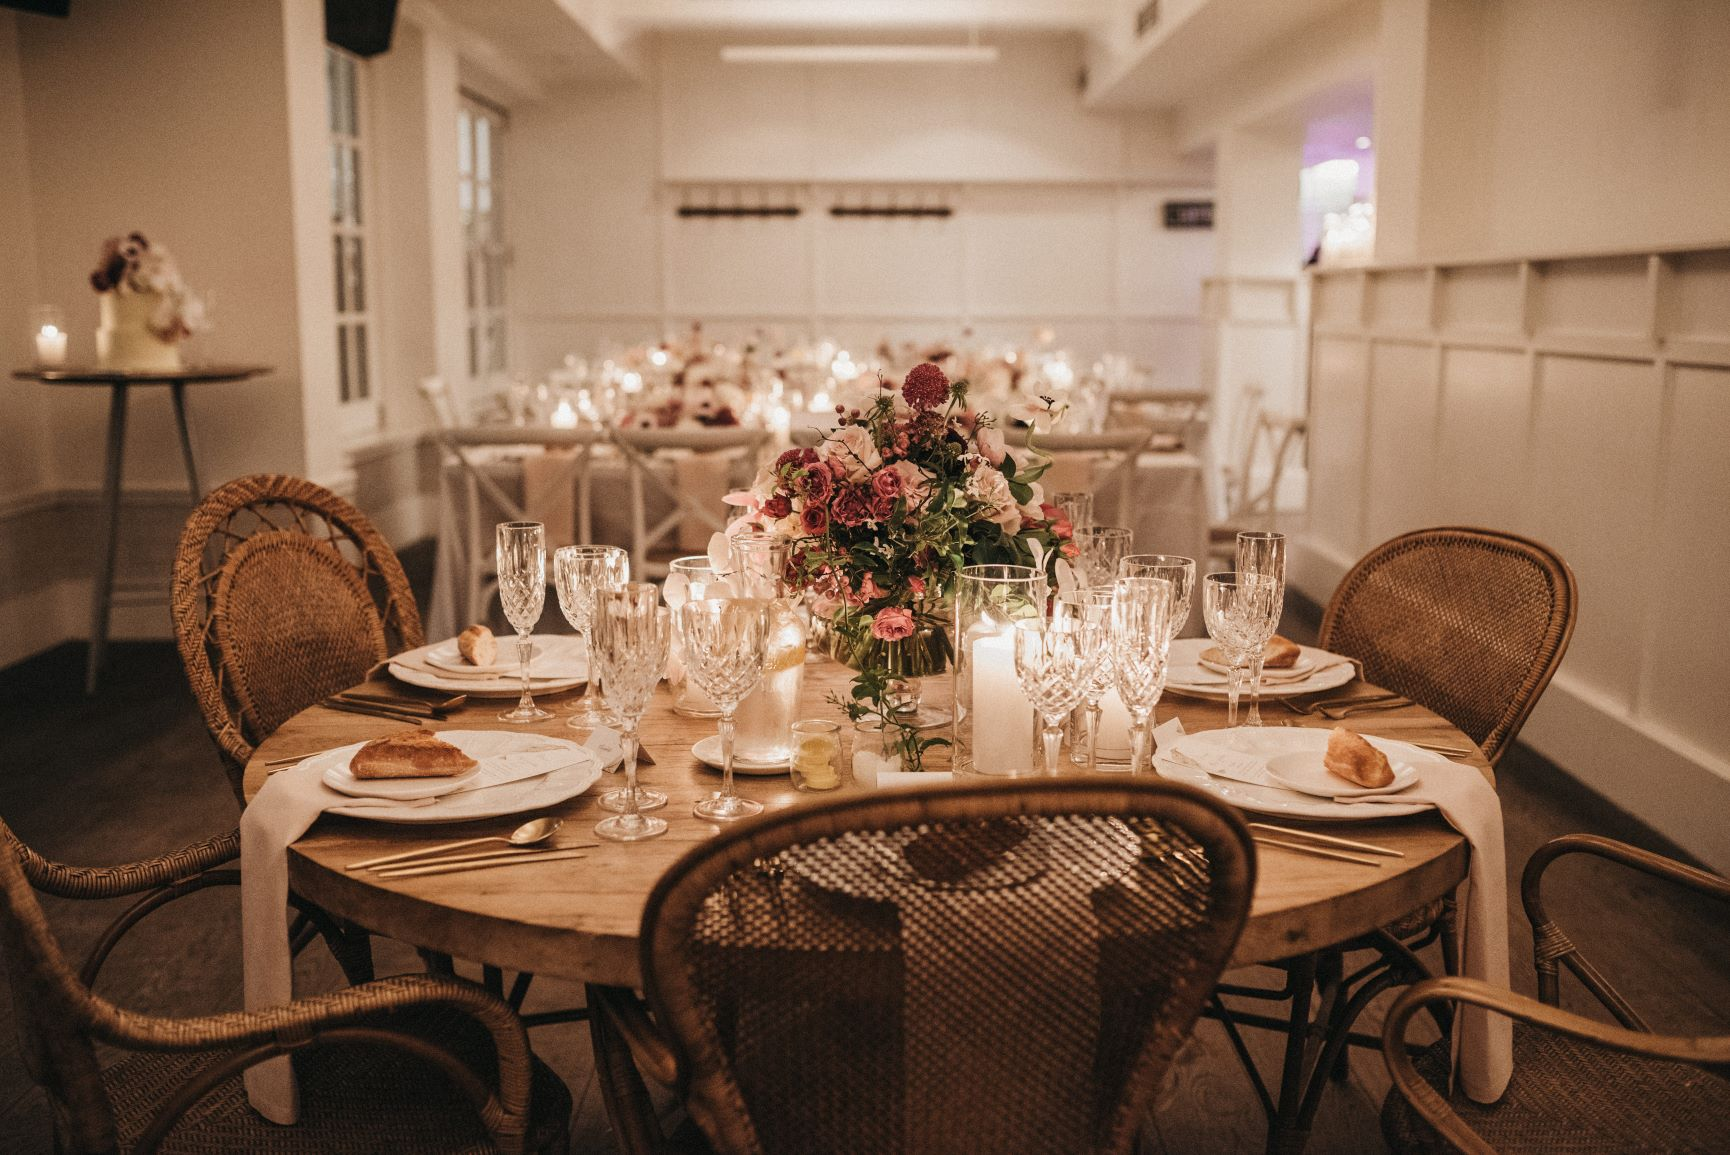 Bridal Table at Watson's Bay Hotel for  Liz and Tim Wedding Styled by The Curated Life.jpg